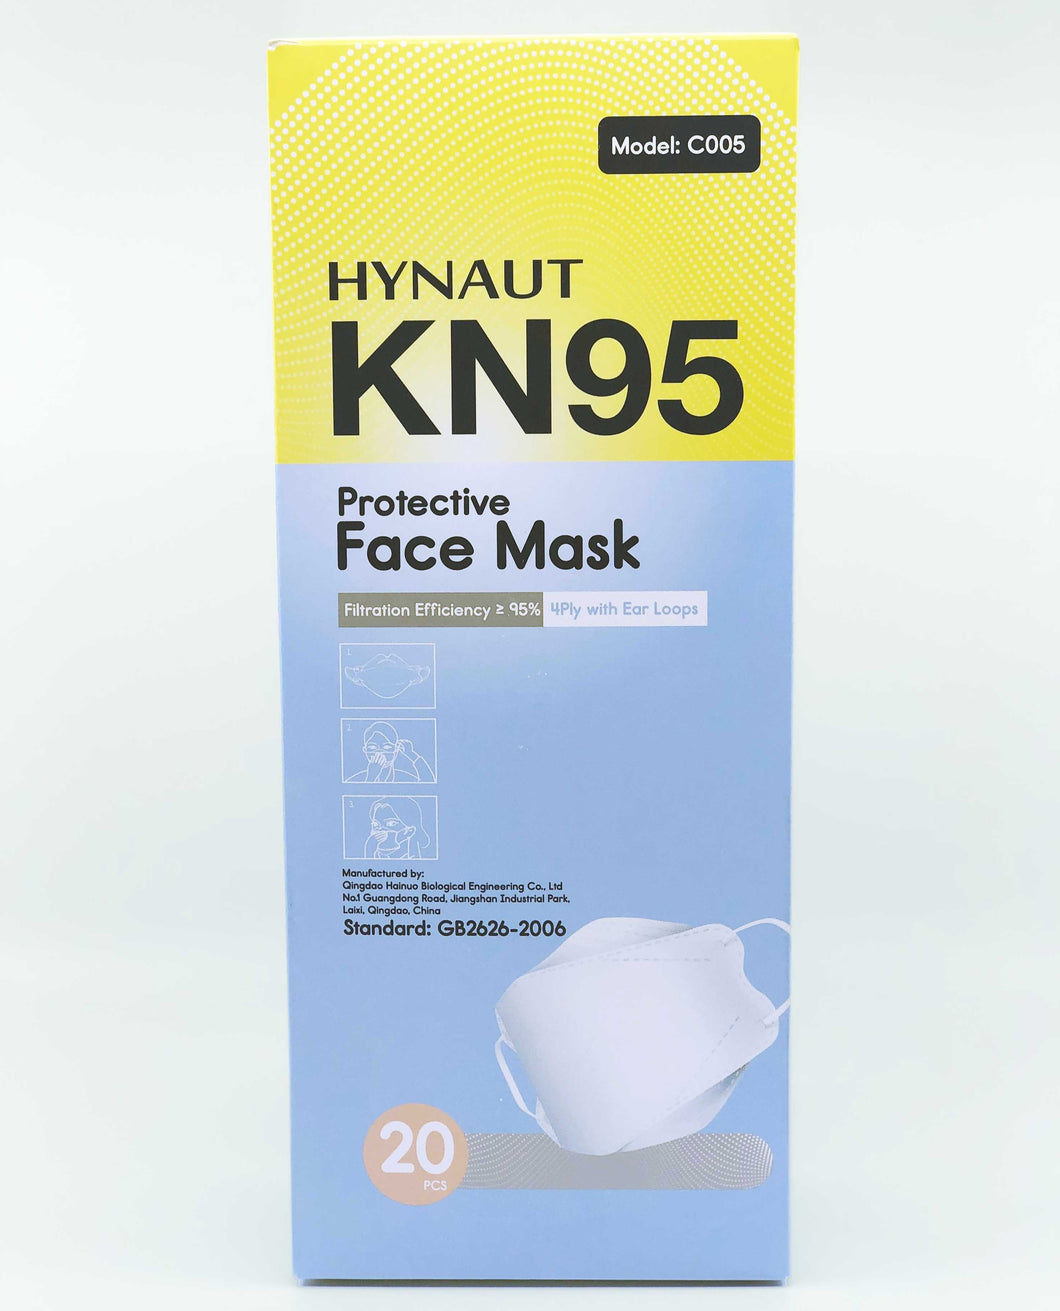 Protective Face Mask Black KN95 (GB2626-2006) 20 Pack